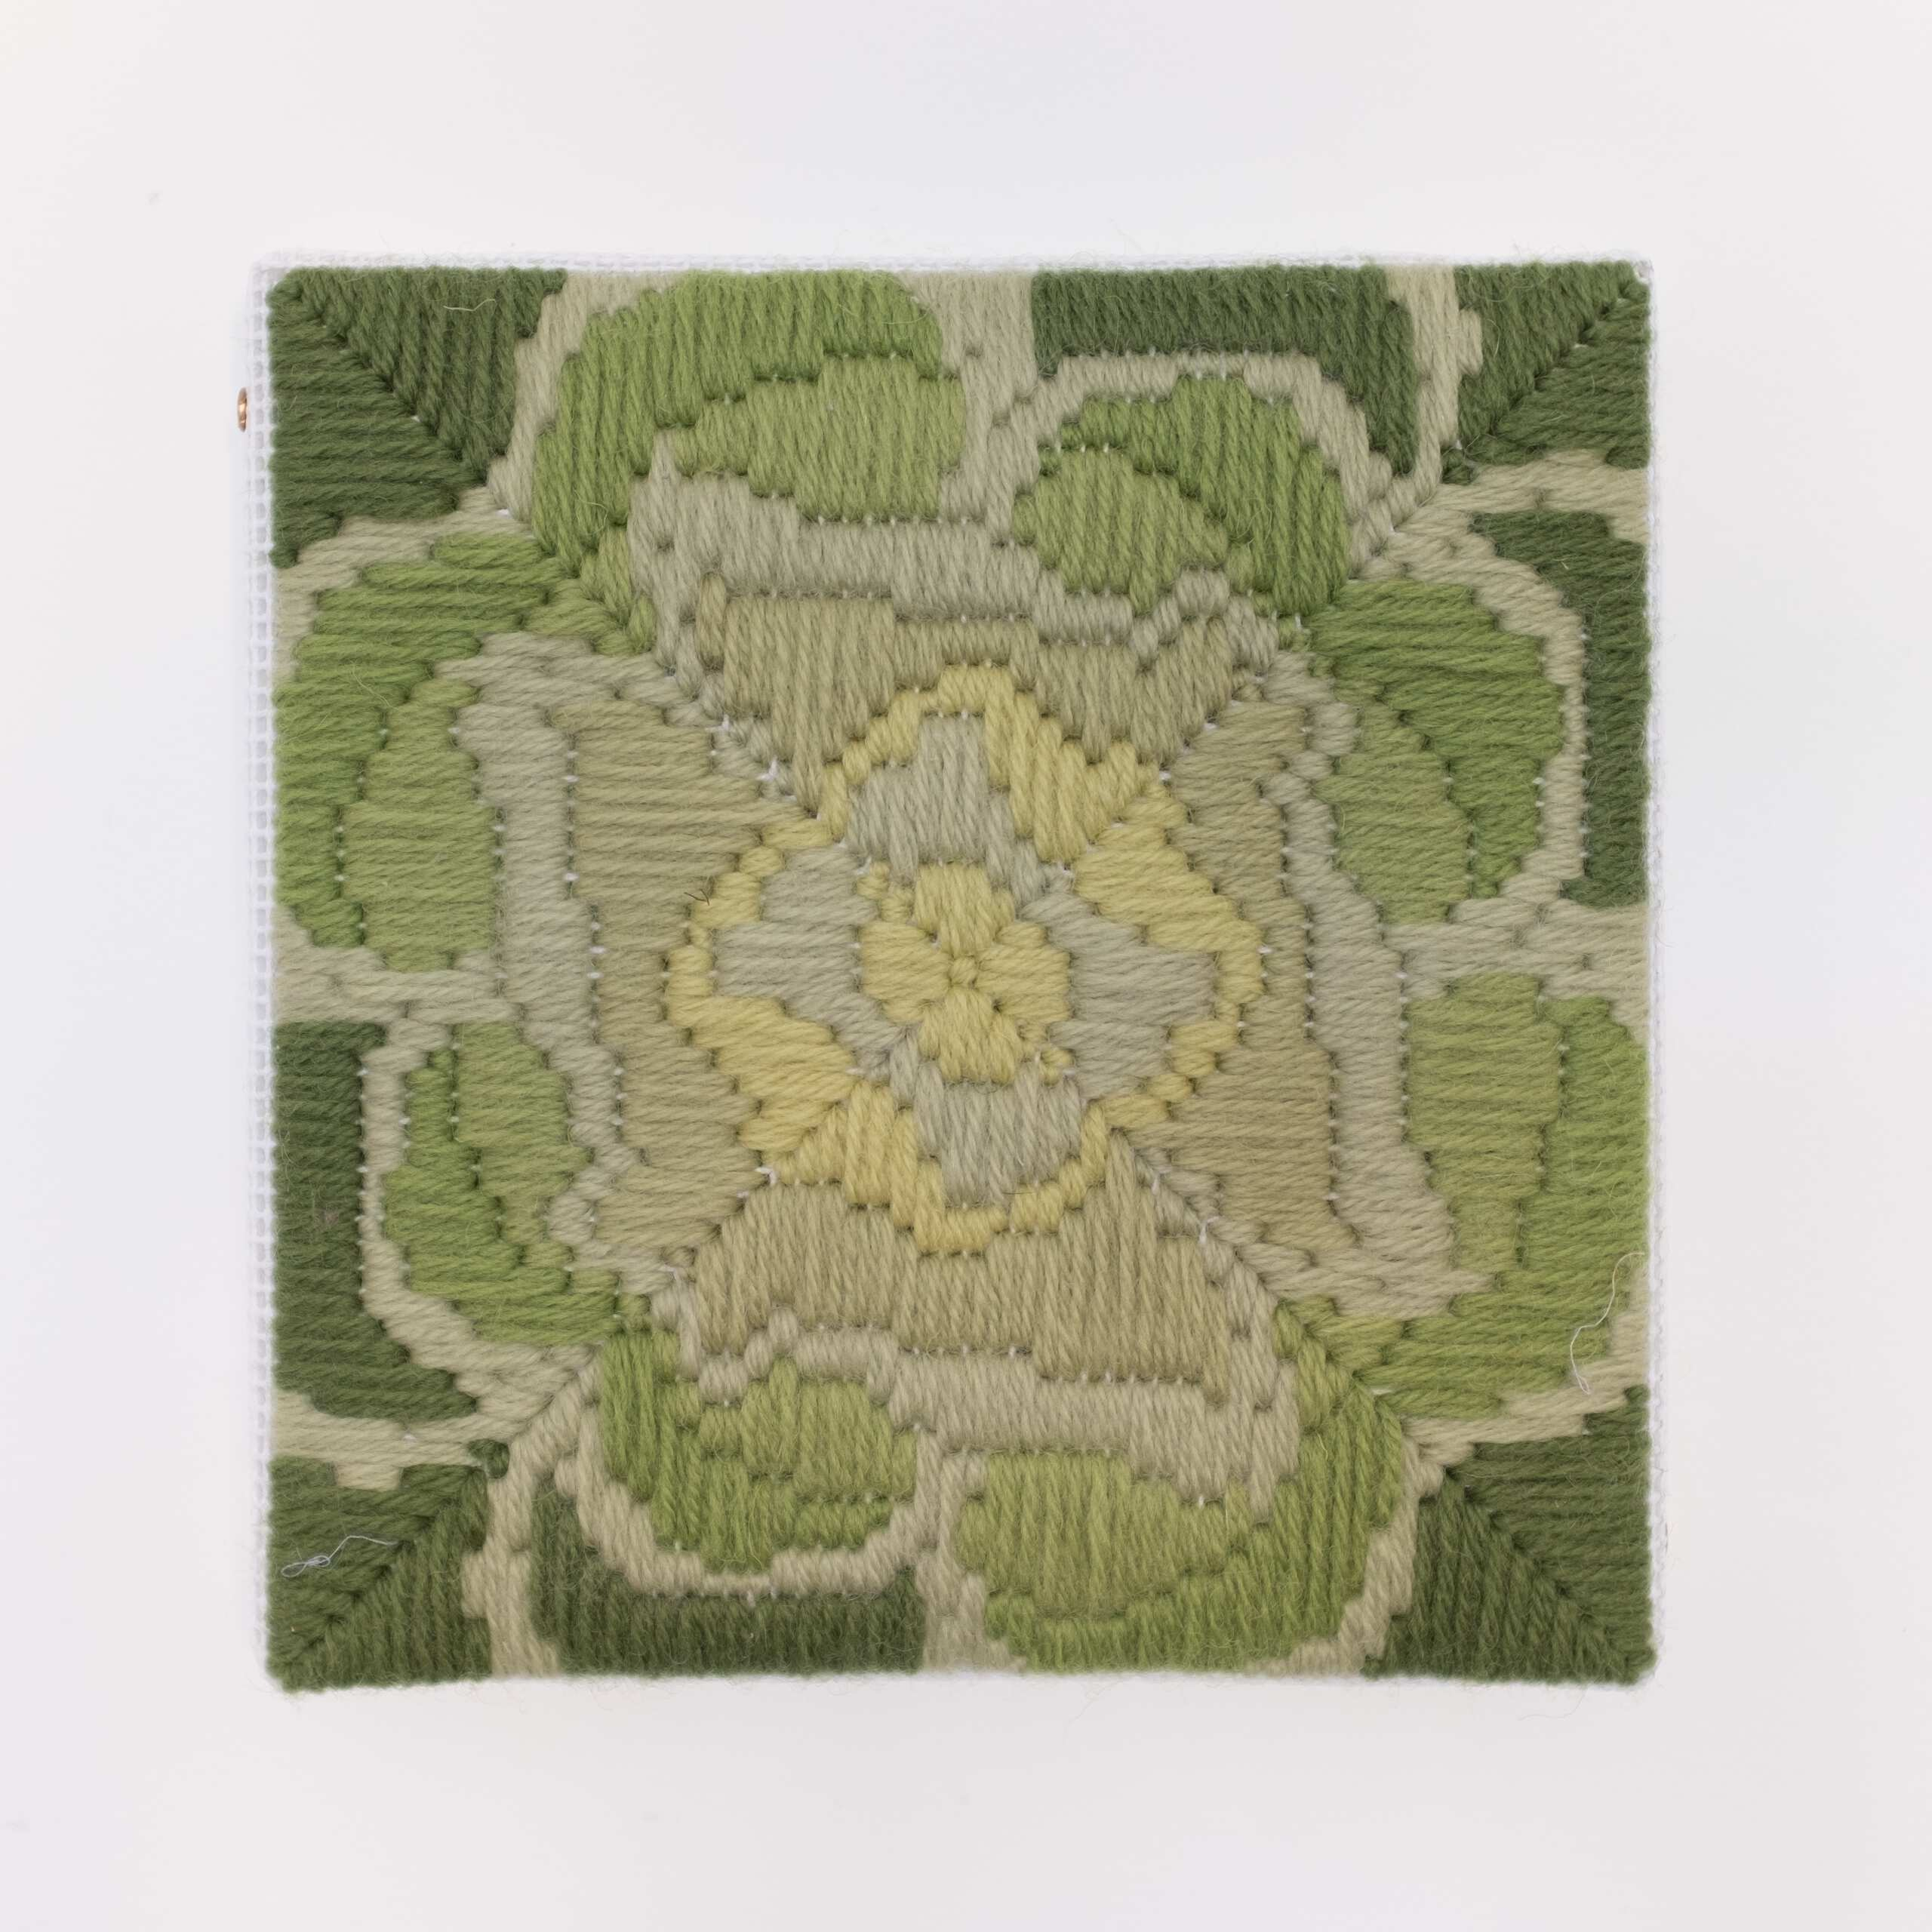 Depression Era [cast glass, yellow-green], Hand-embroidered wool on canvas over panel, 2020